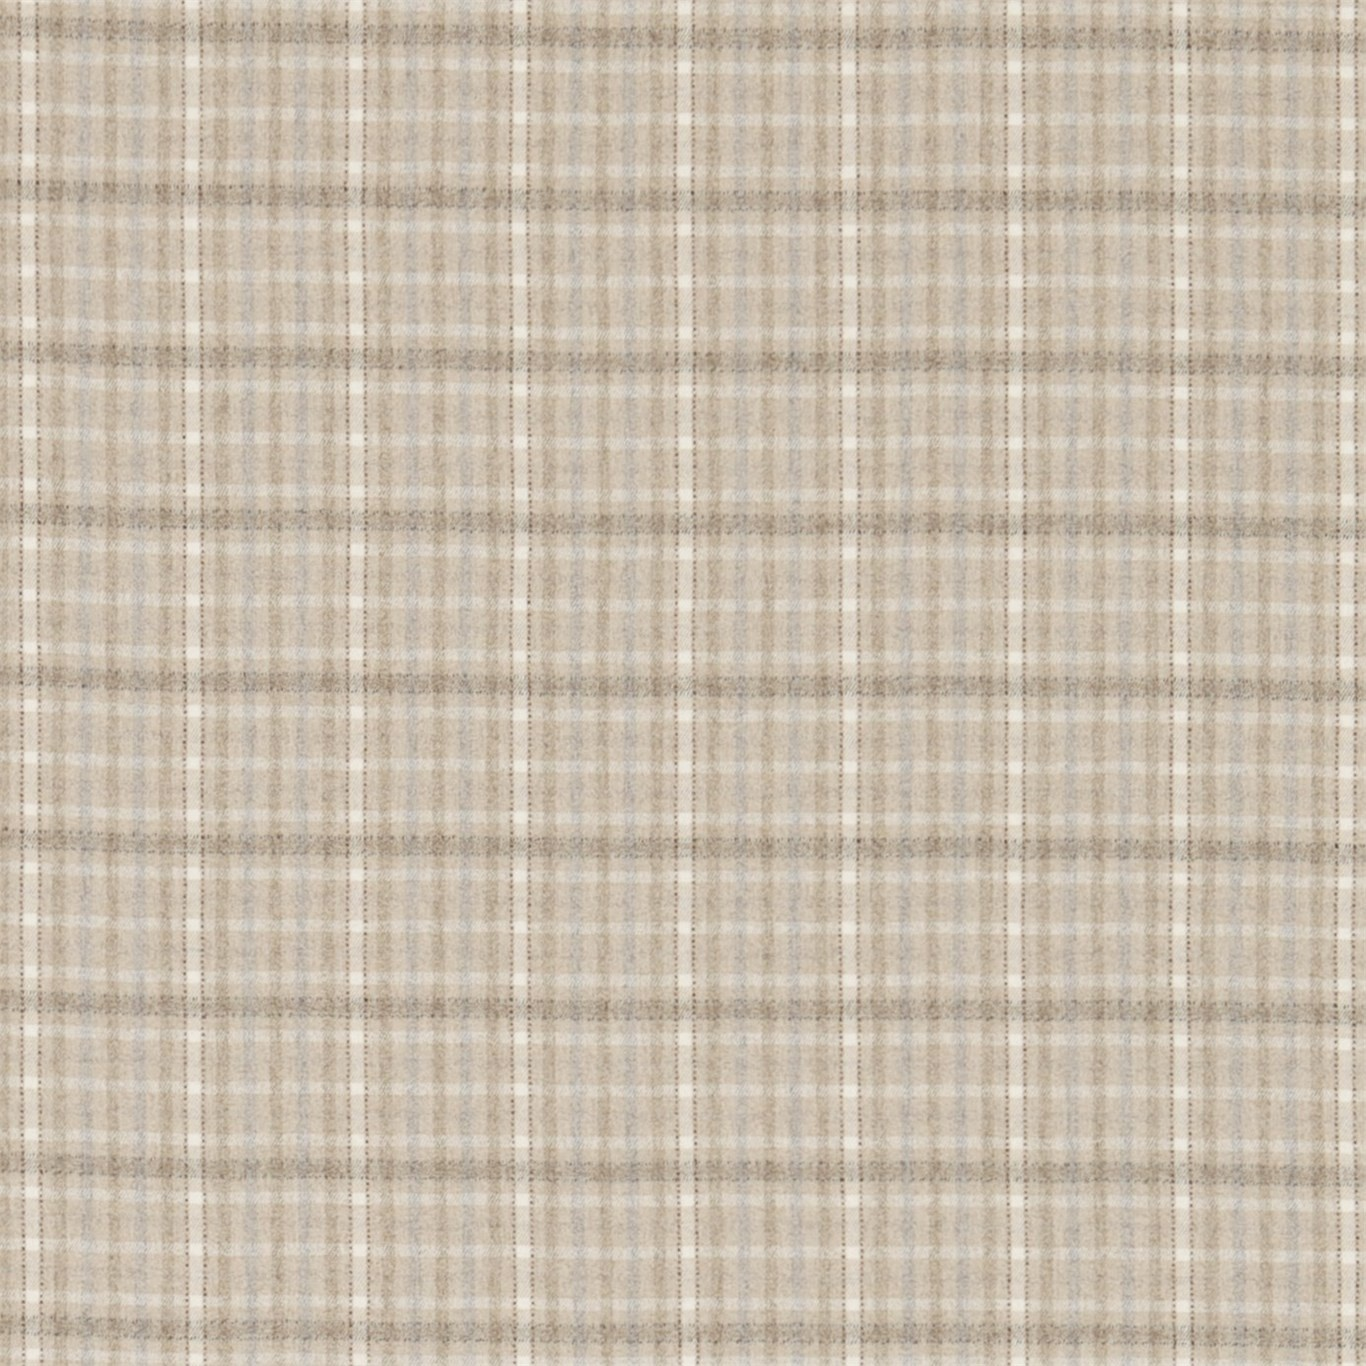 Image of Sanderson Langtry Linen/Pebble Fabric 233260